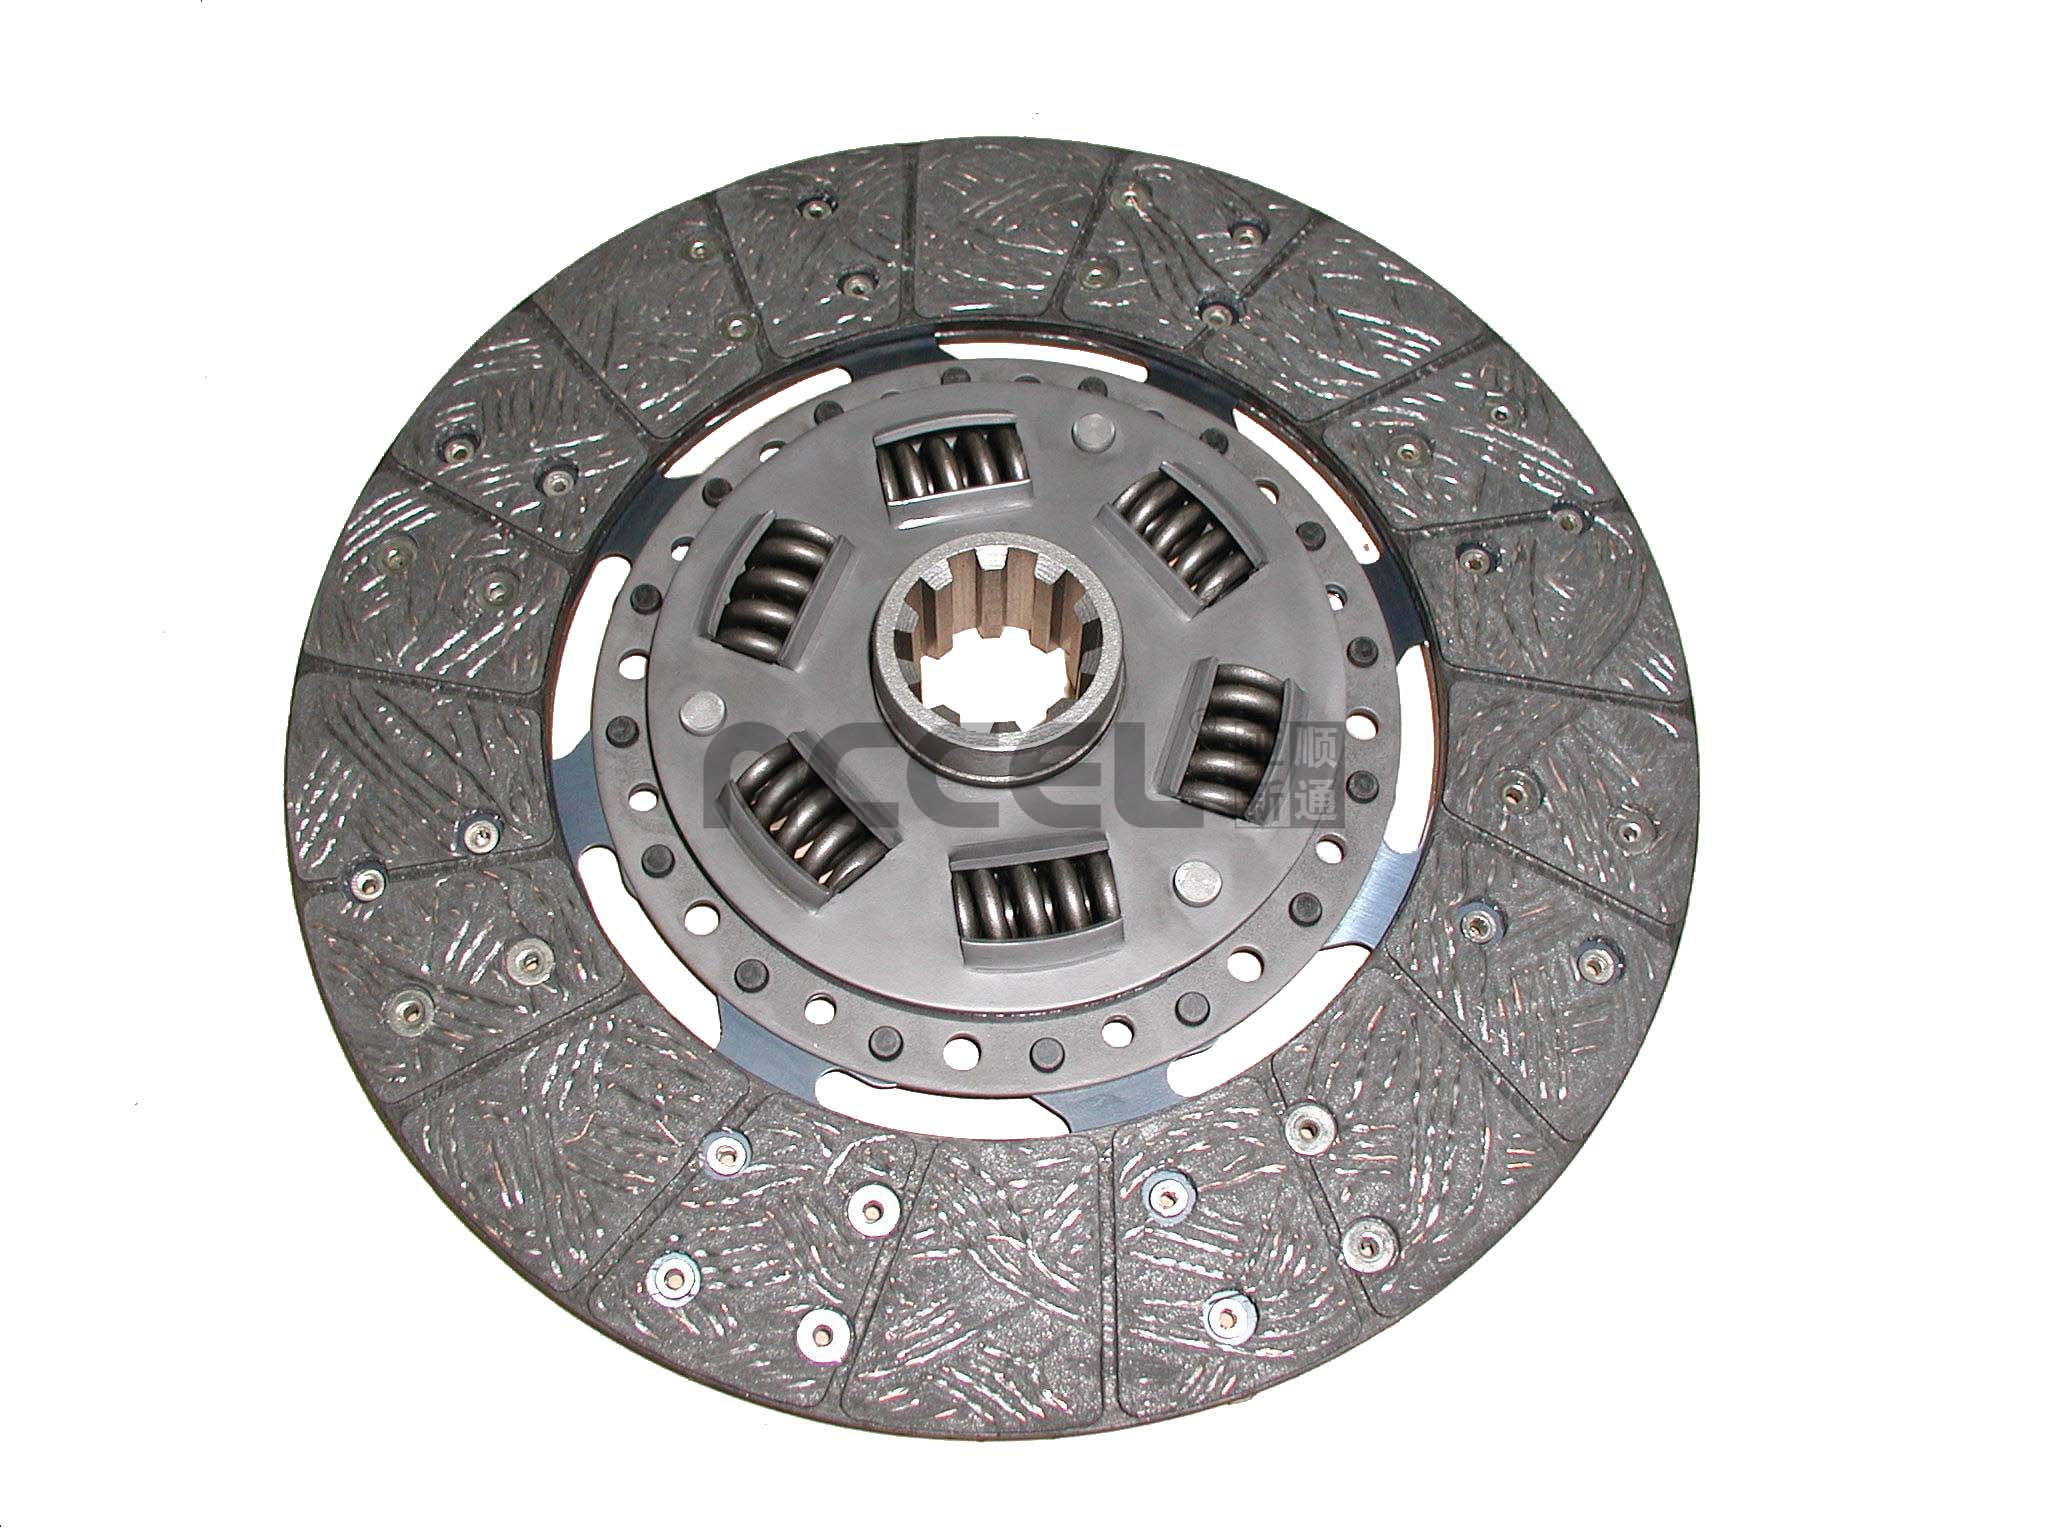 Clutch Disc/OE:325 0175 10/254*158*10*35.1/ARS-005/RUSSIA Car/CL0988